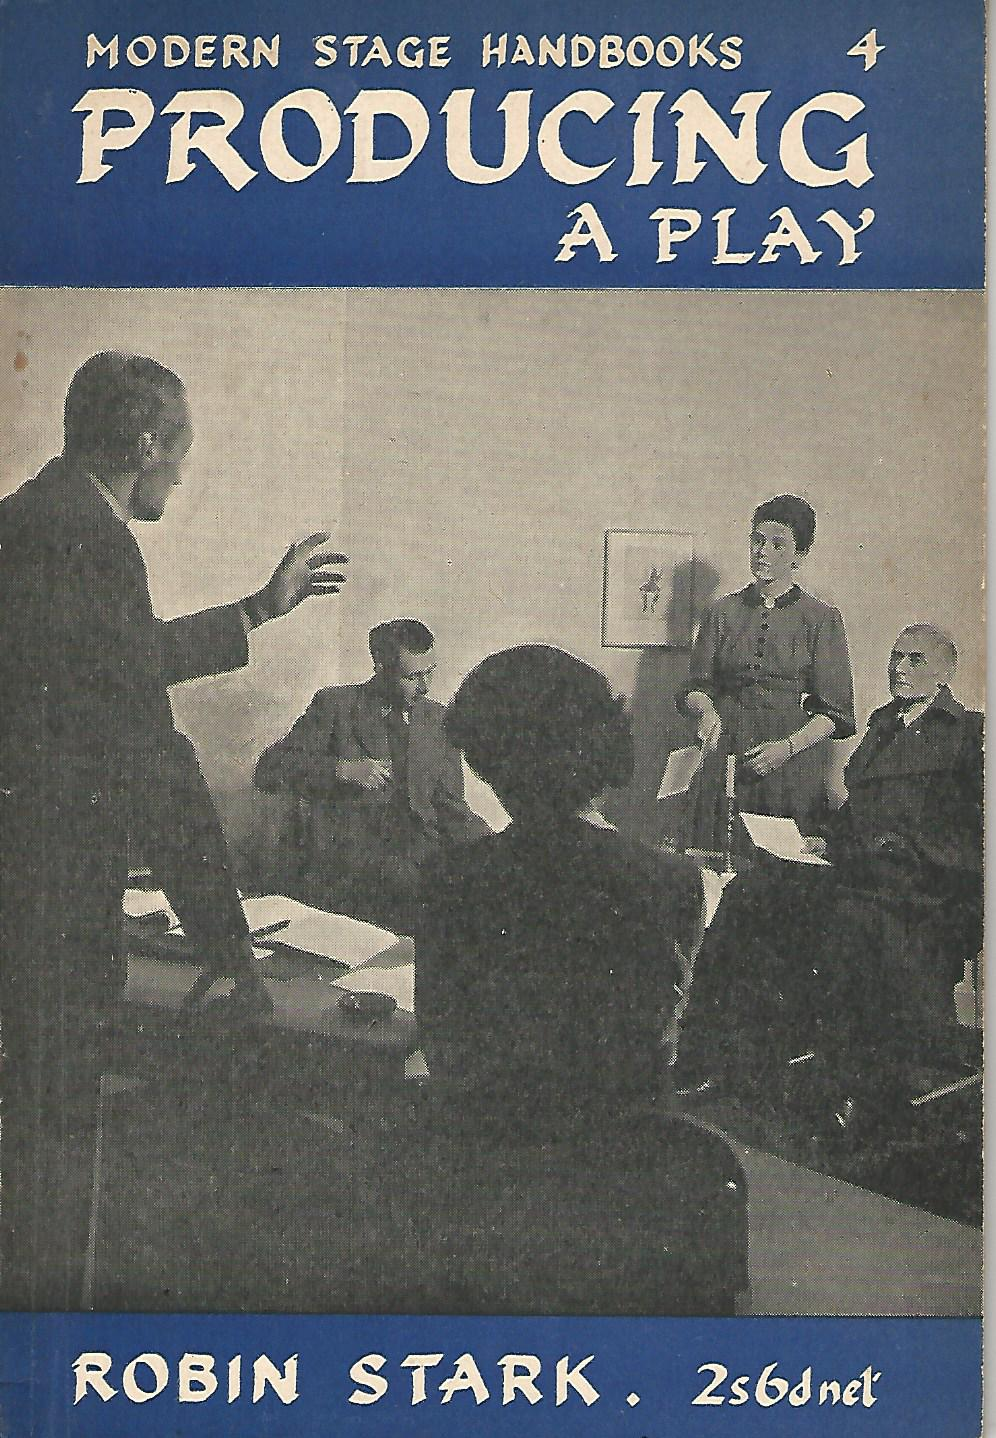 Image for Modern Stage handbooks:Producing a Play. Number 4.